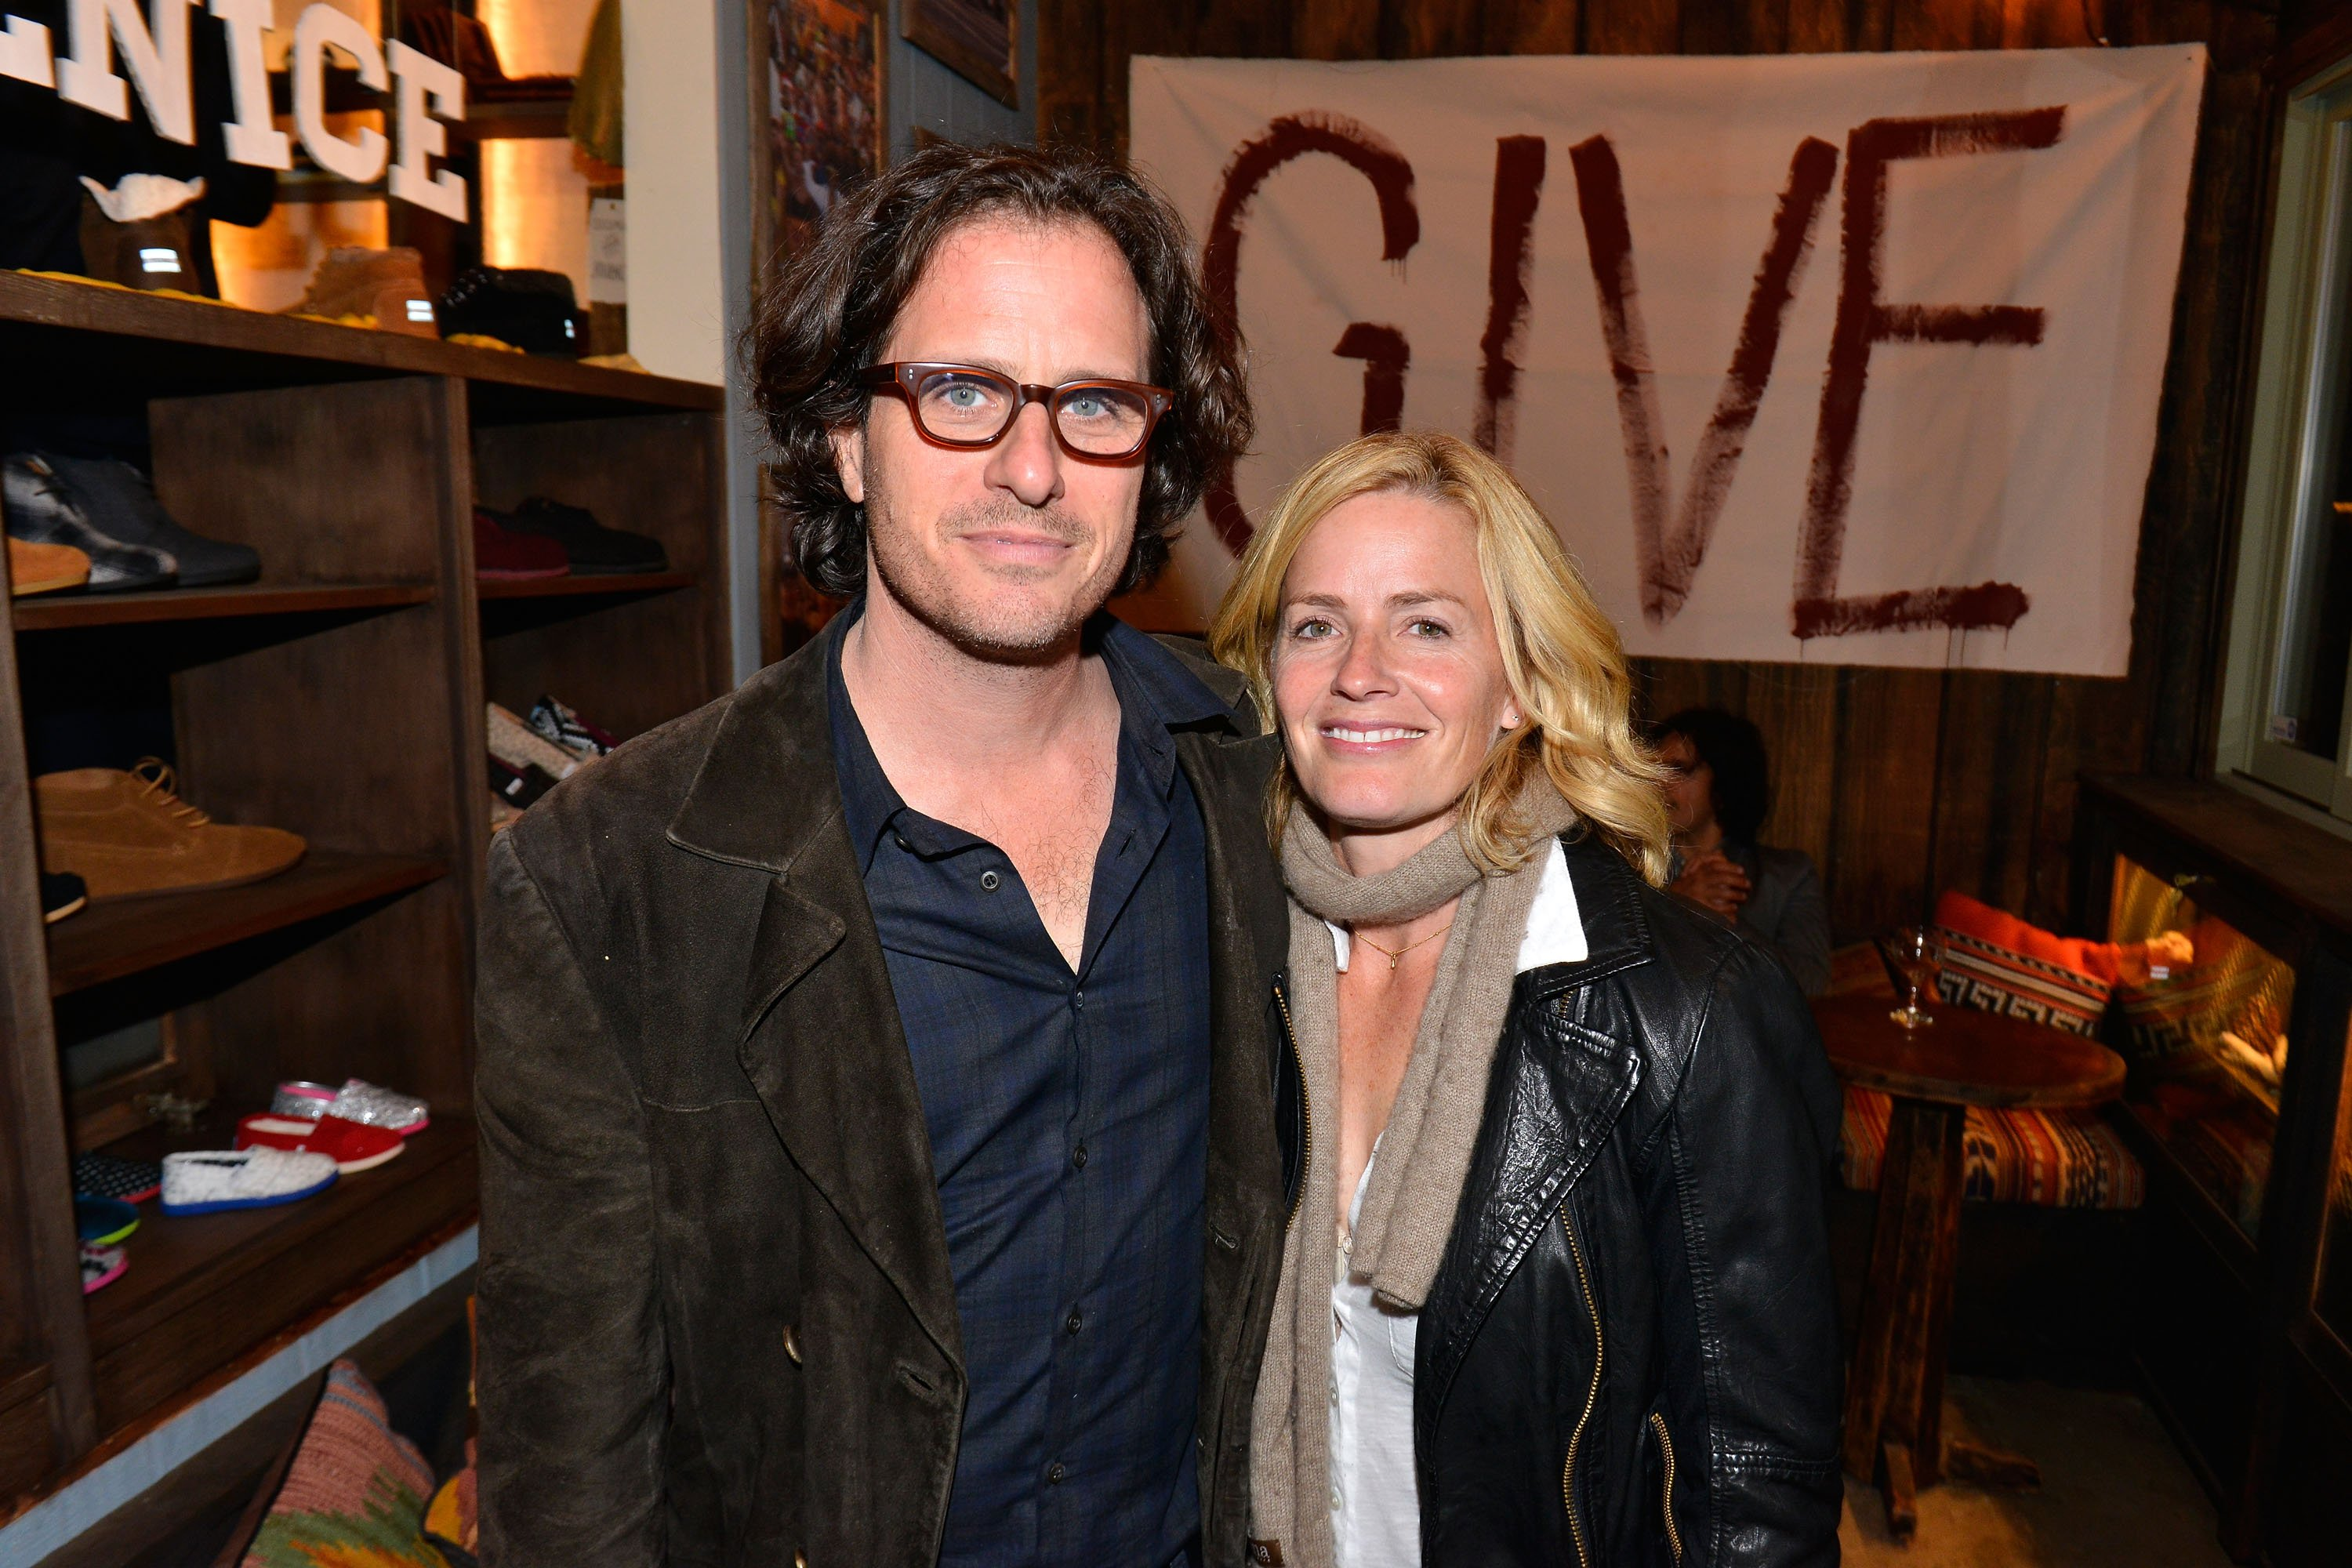 Davis Guggenheim and actress Elisabeth Shue attend the Grand Opening of TOMS official flagship store on December 17, 2012, in Venice, California. | Source: Getty Images.